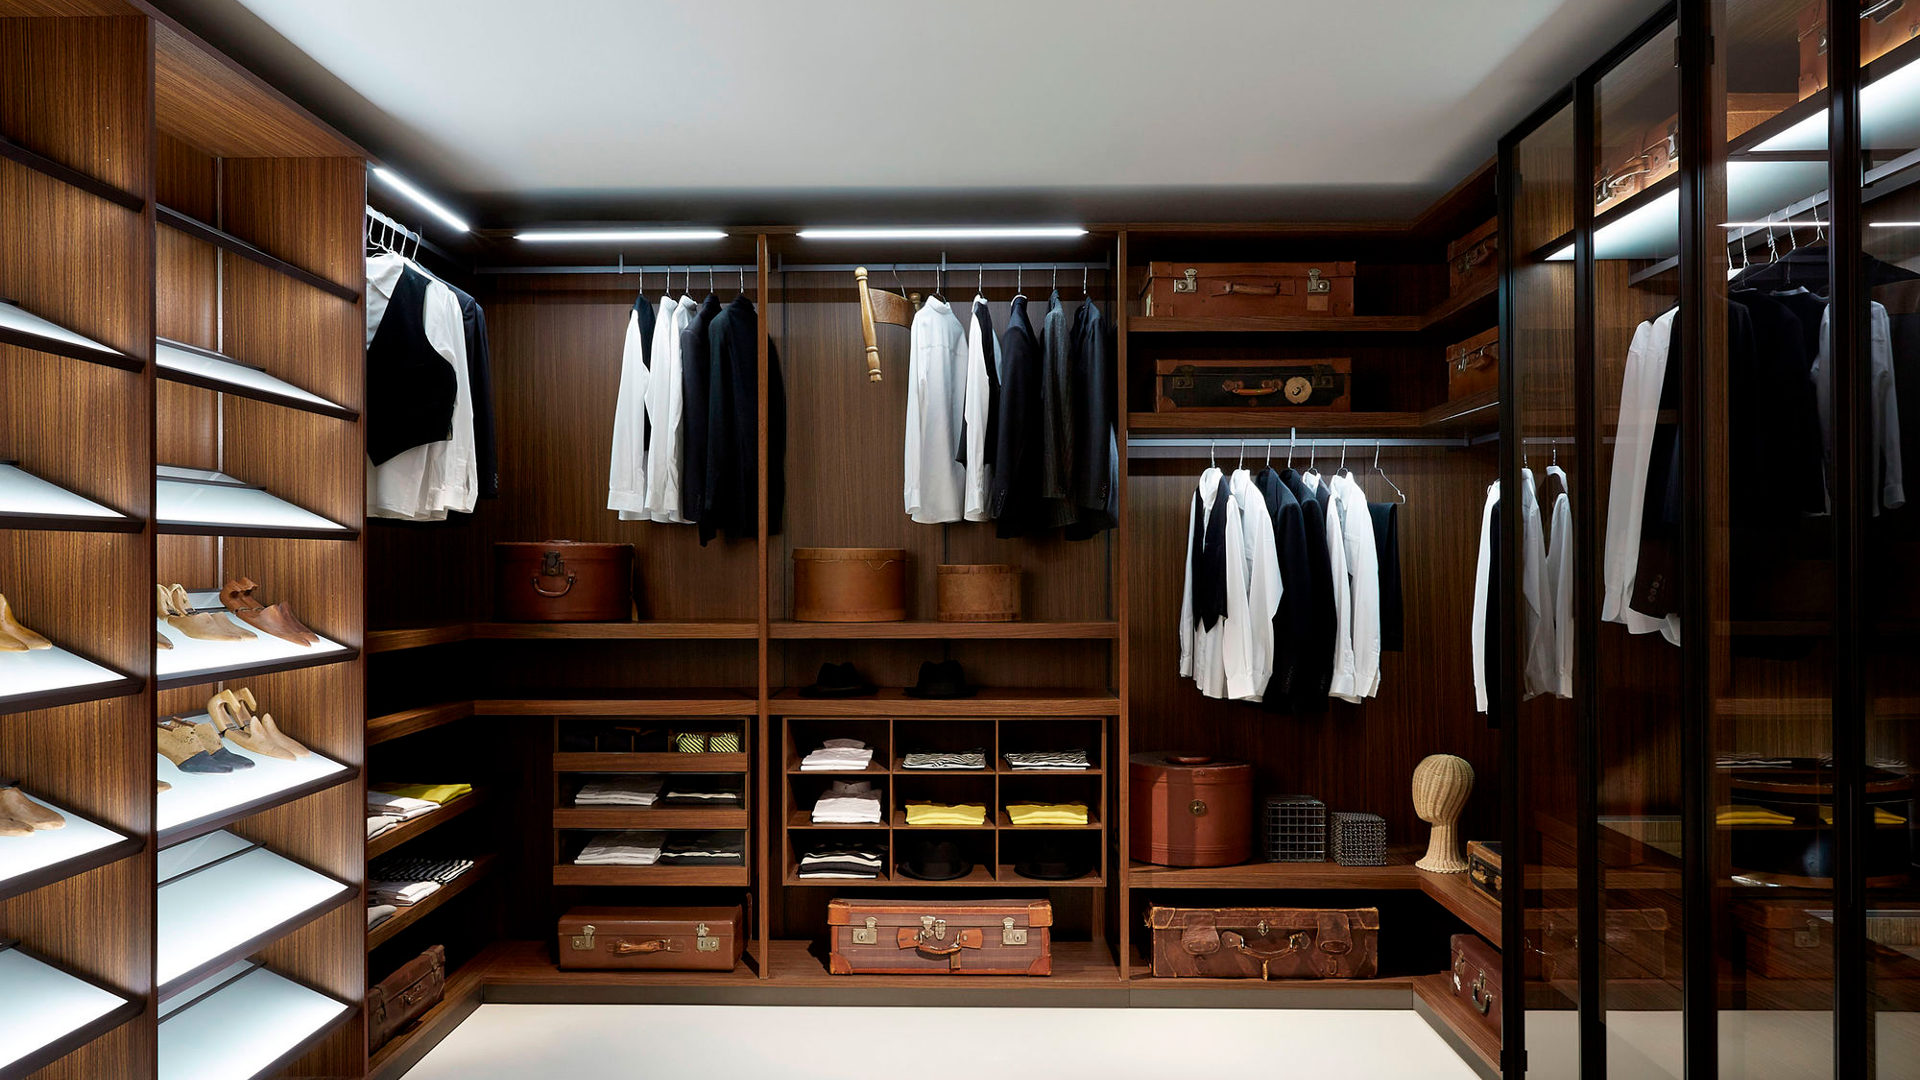 Top 10 Walk in Closet Designs | Design Trends - Premium PSD, Vector ...